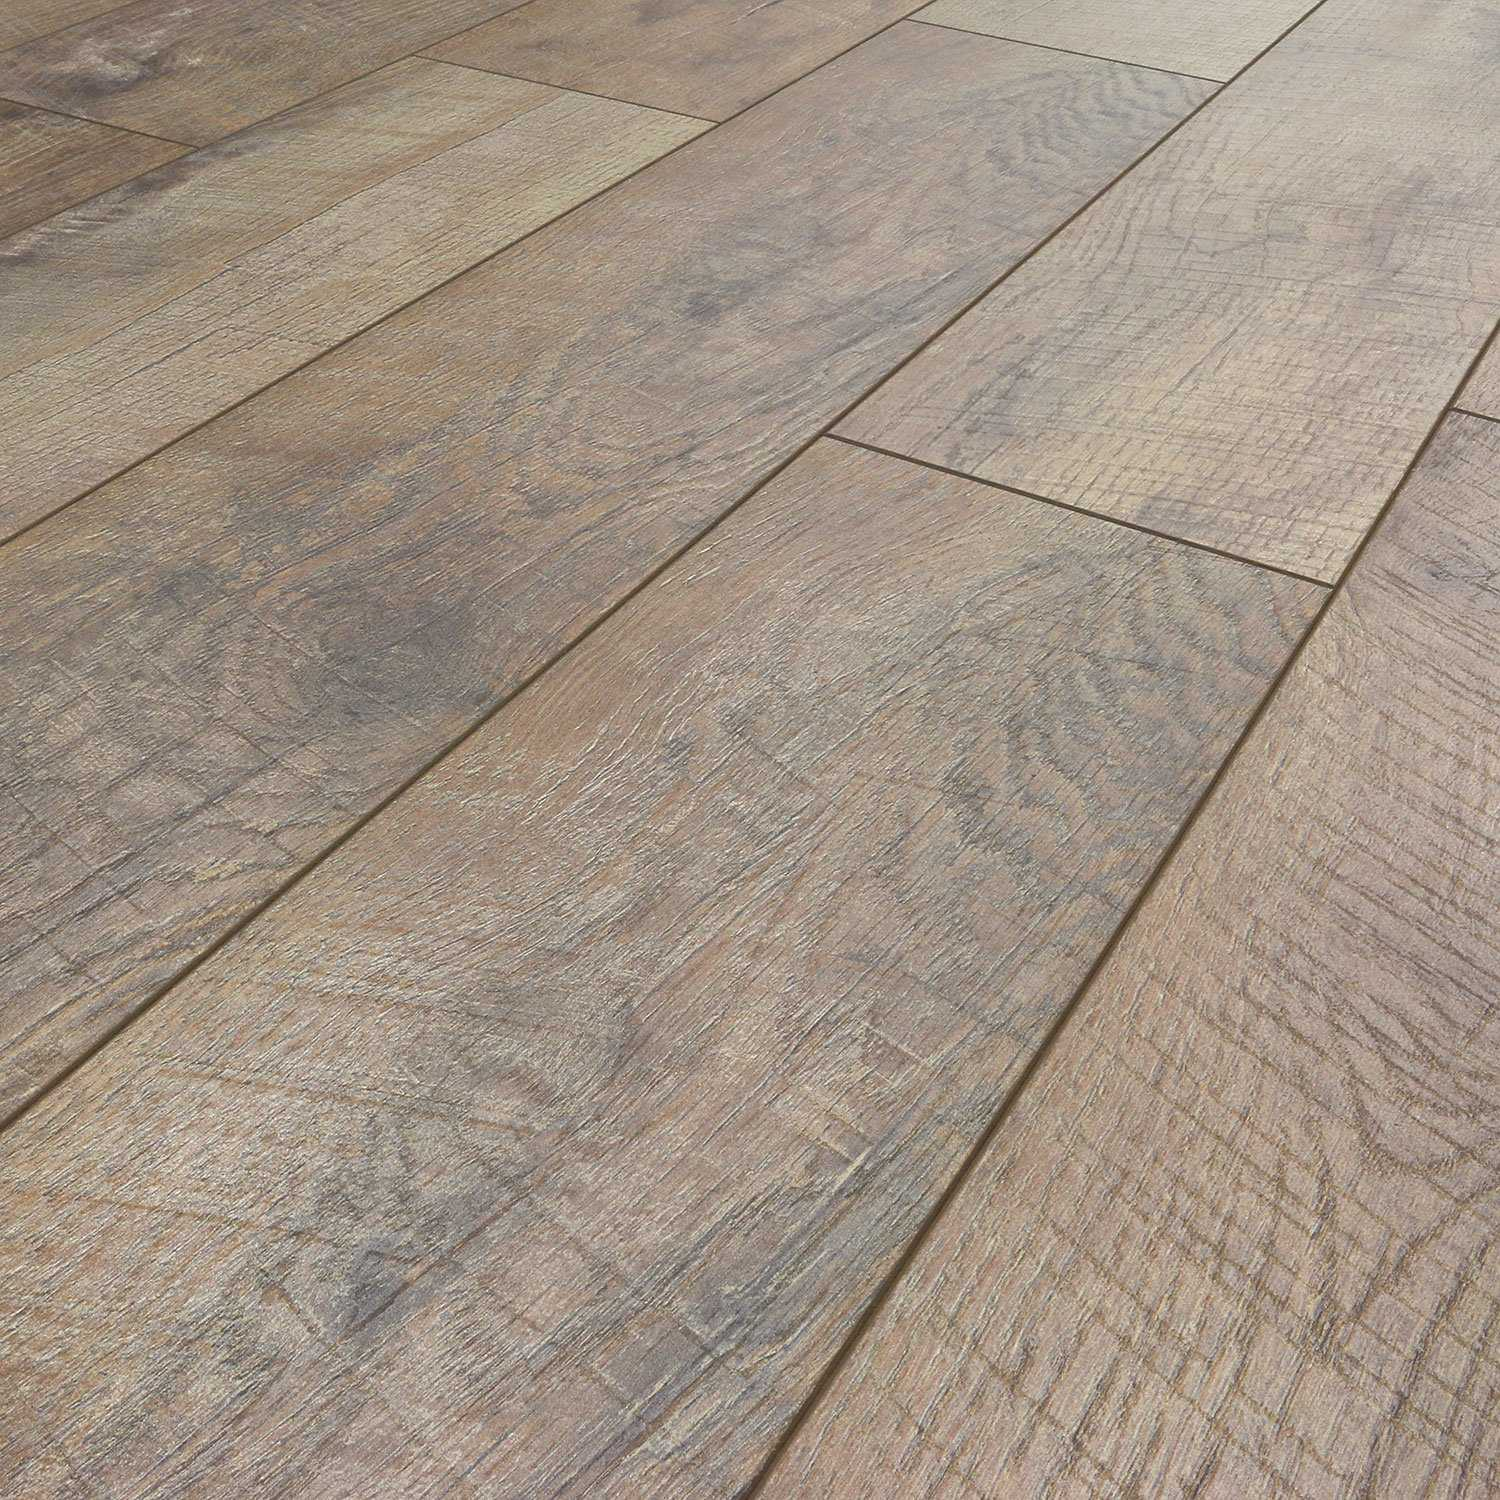 Select Surfaces Laminate Flooring, Driftwood (6 Planks, 12.50 sq. ft.)